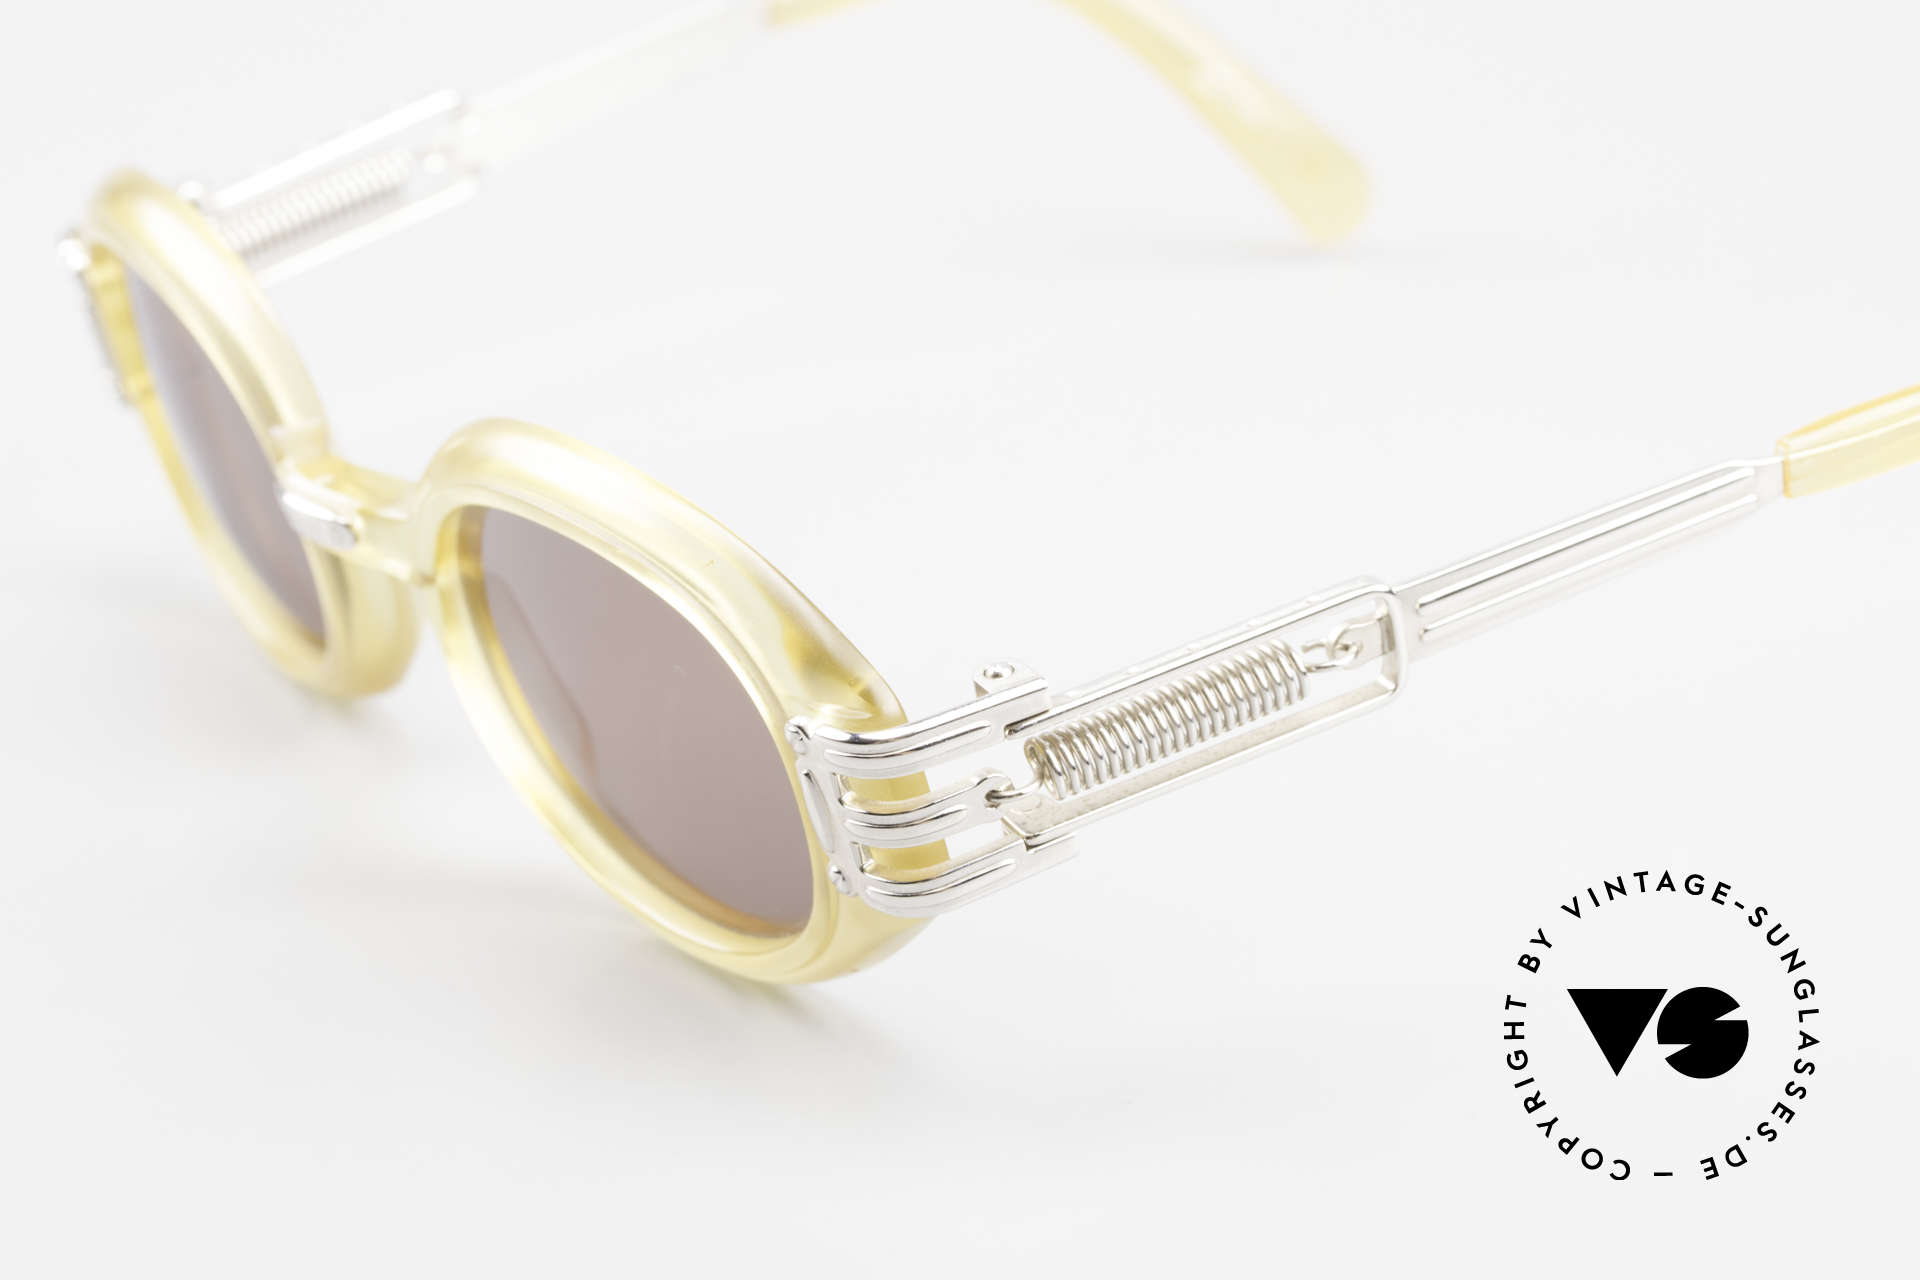 Jean Paul Gaultier 56-5203 90's Steampunk Shades Oval, new old stock (like all our vintage JP Gaultier shades), Made for Men and Women